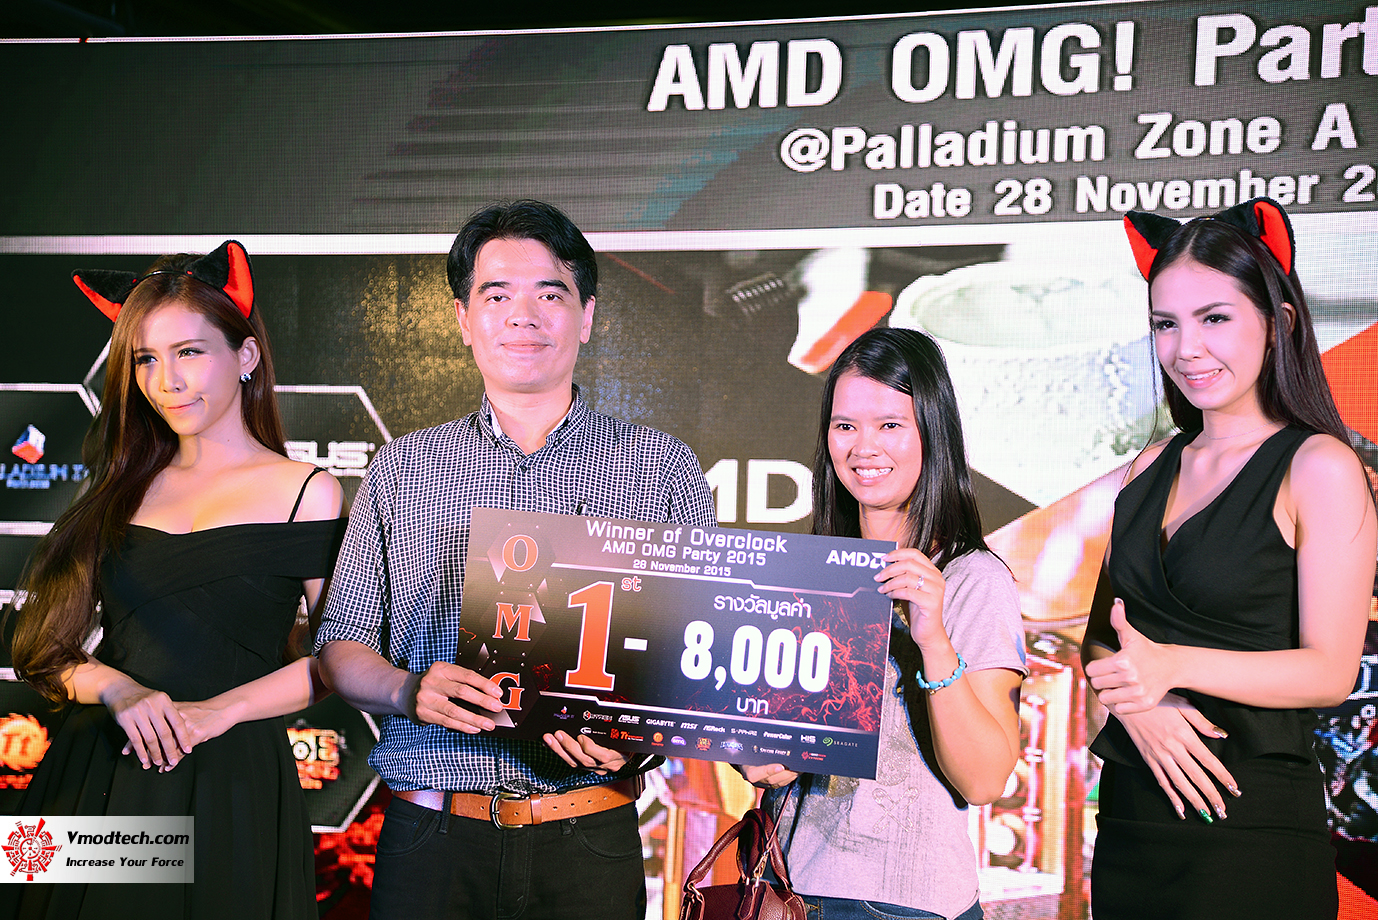 dsc 7902 AMD OMG! Party 2015 (AMD Overclock Modding Gaming Party 2015)